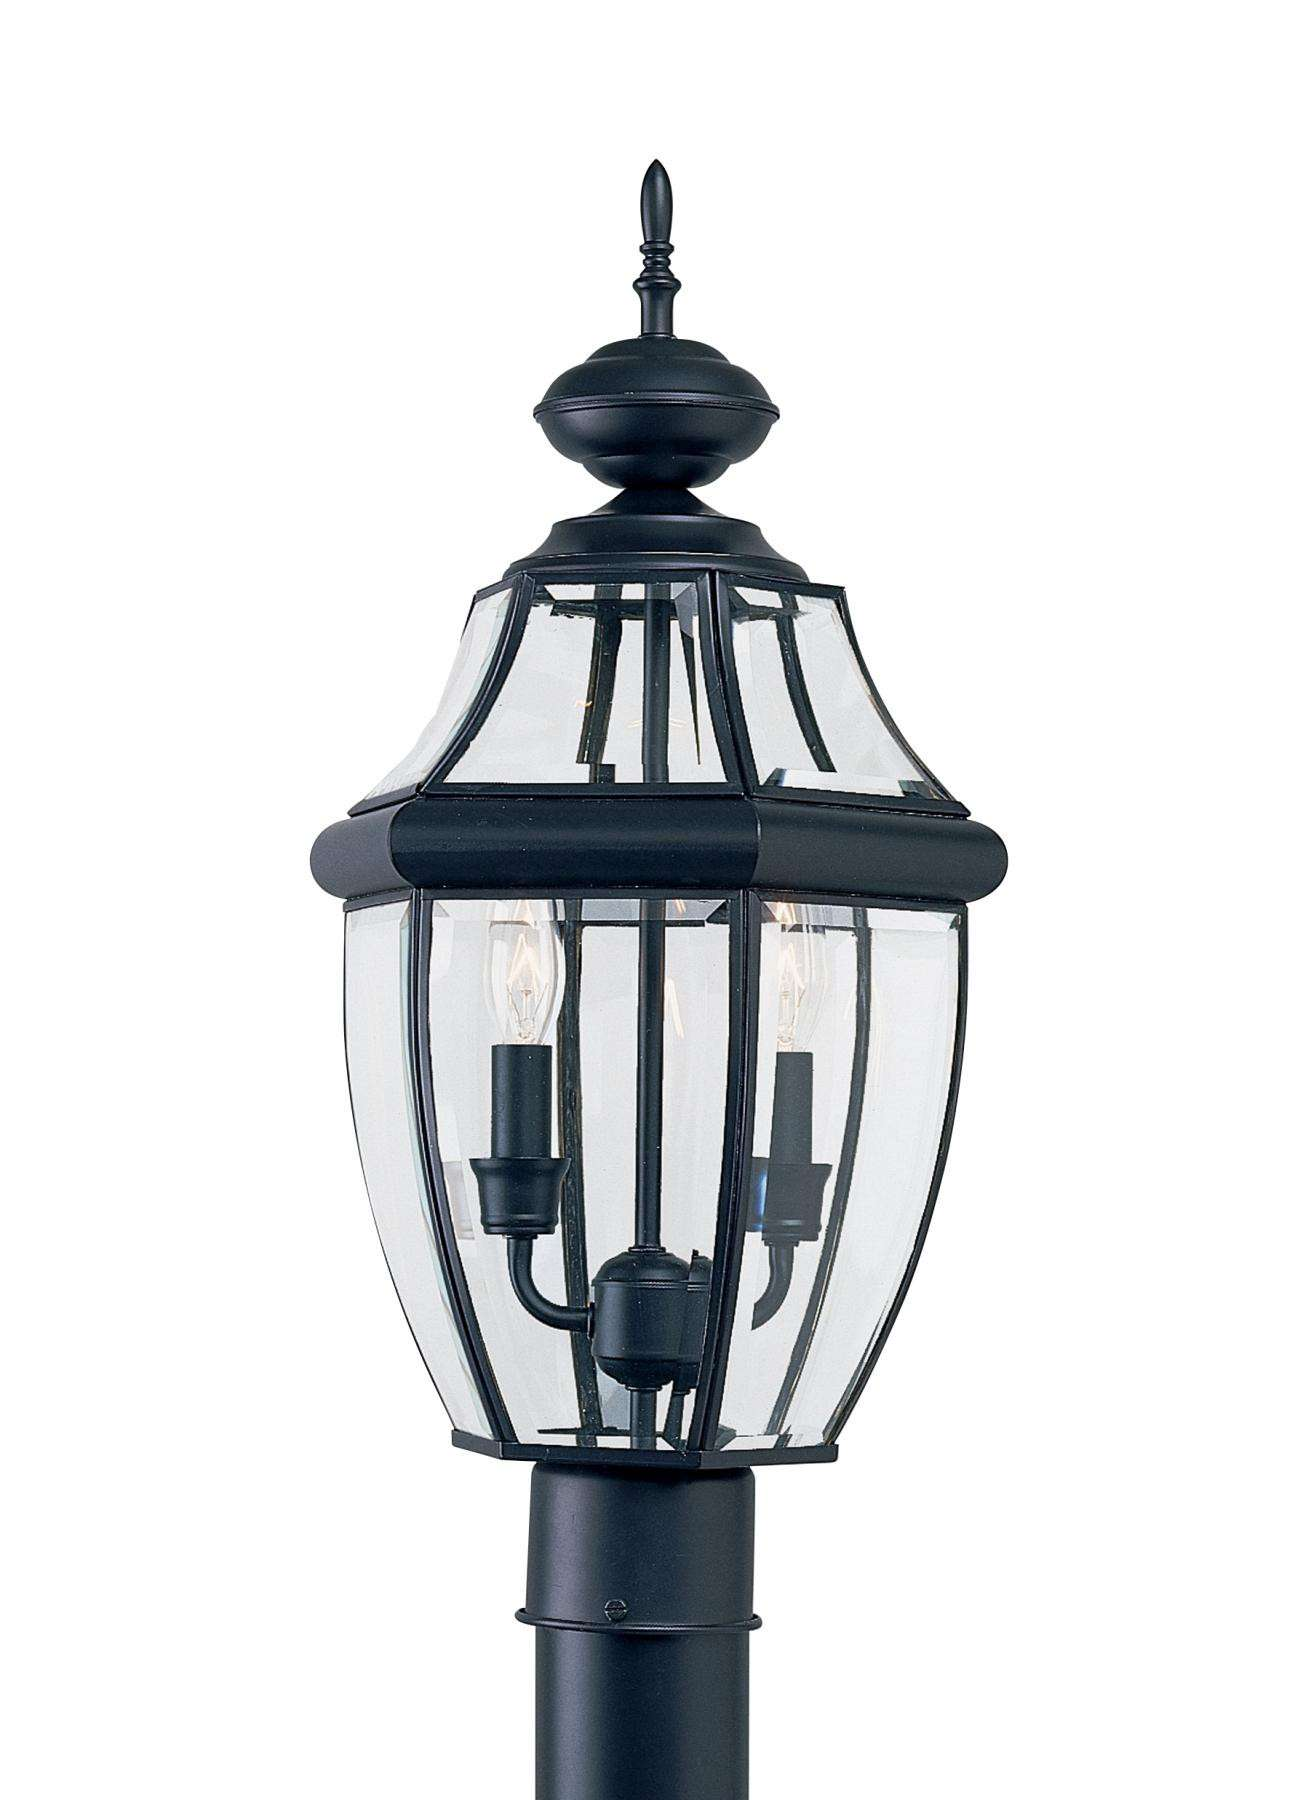 Seagull Lighting 8229-12 Two-Light Lancaster Black Post Lantern in Black finish